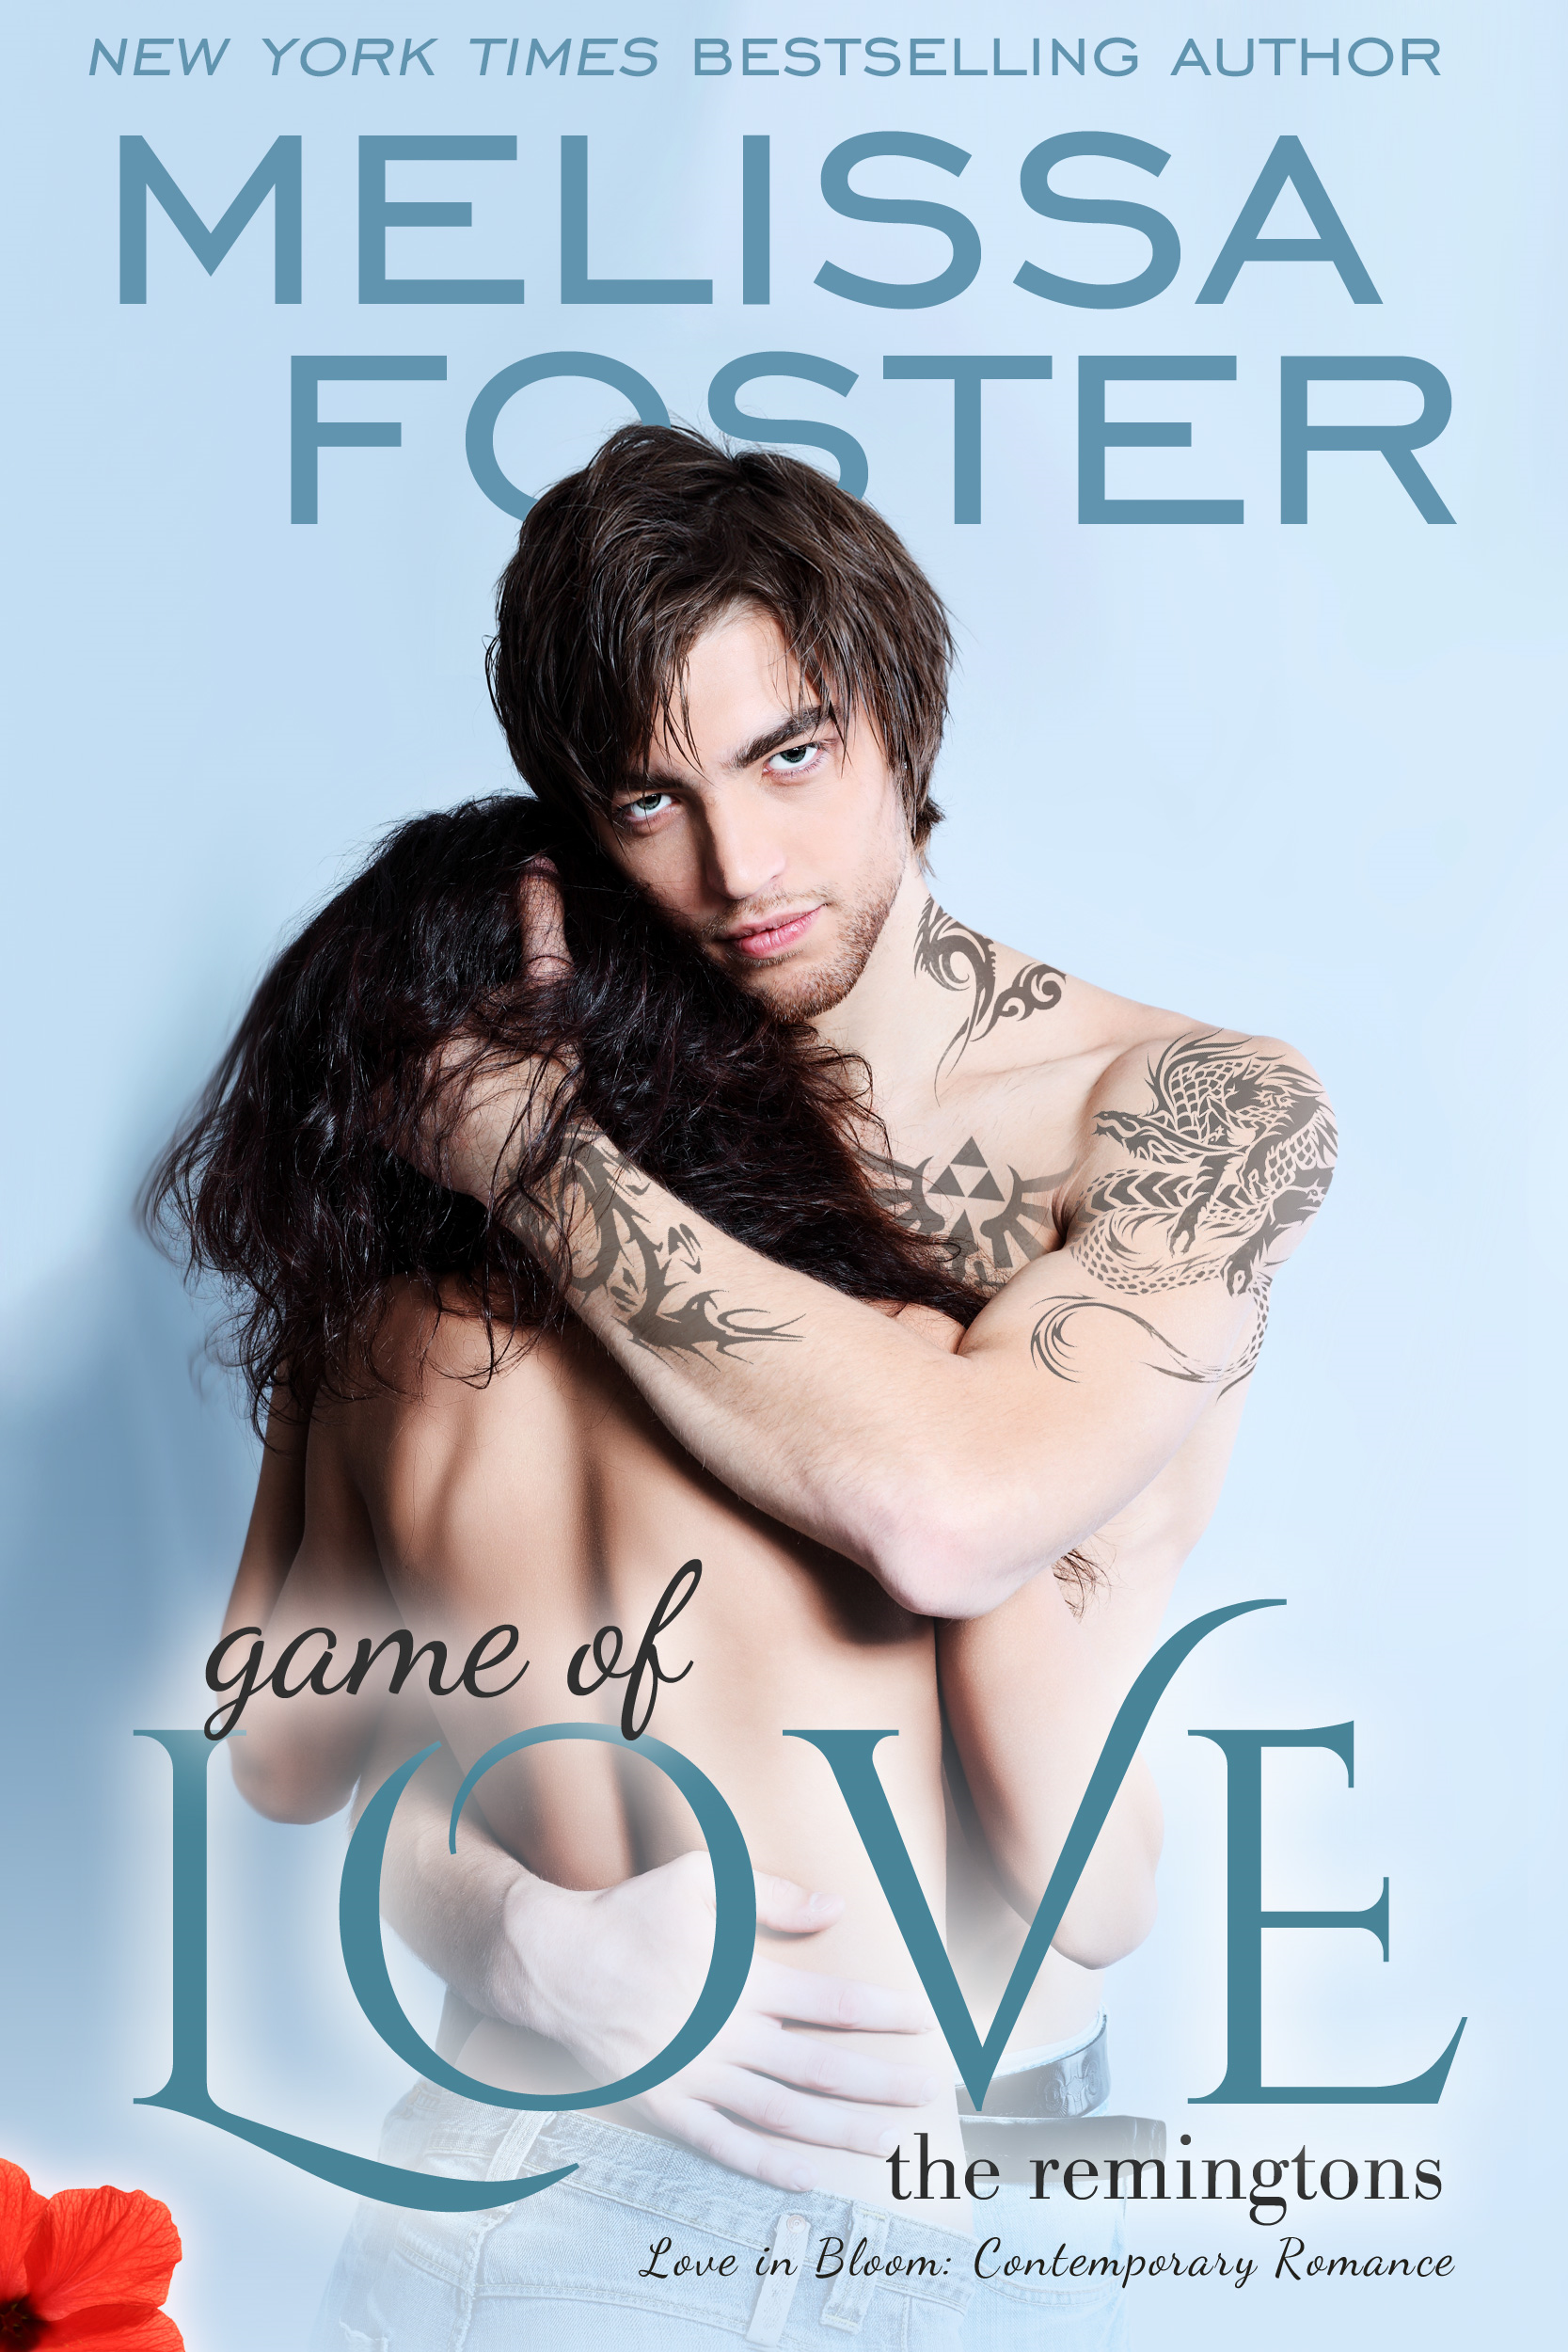 Melissa Foster - GAME OF LOVE (Love in Bloom: The Remingtons, Book 1)